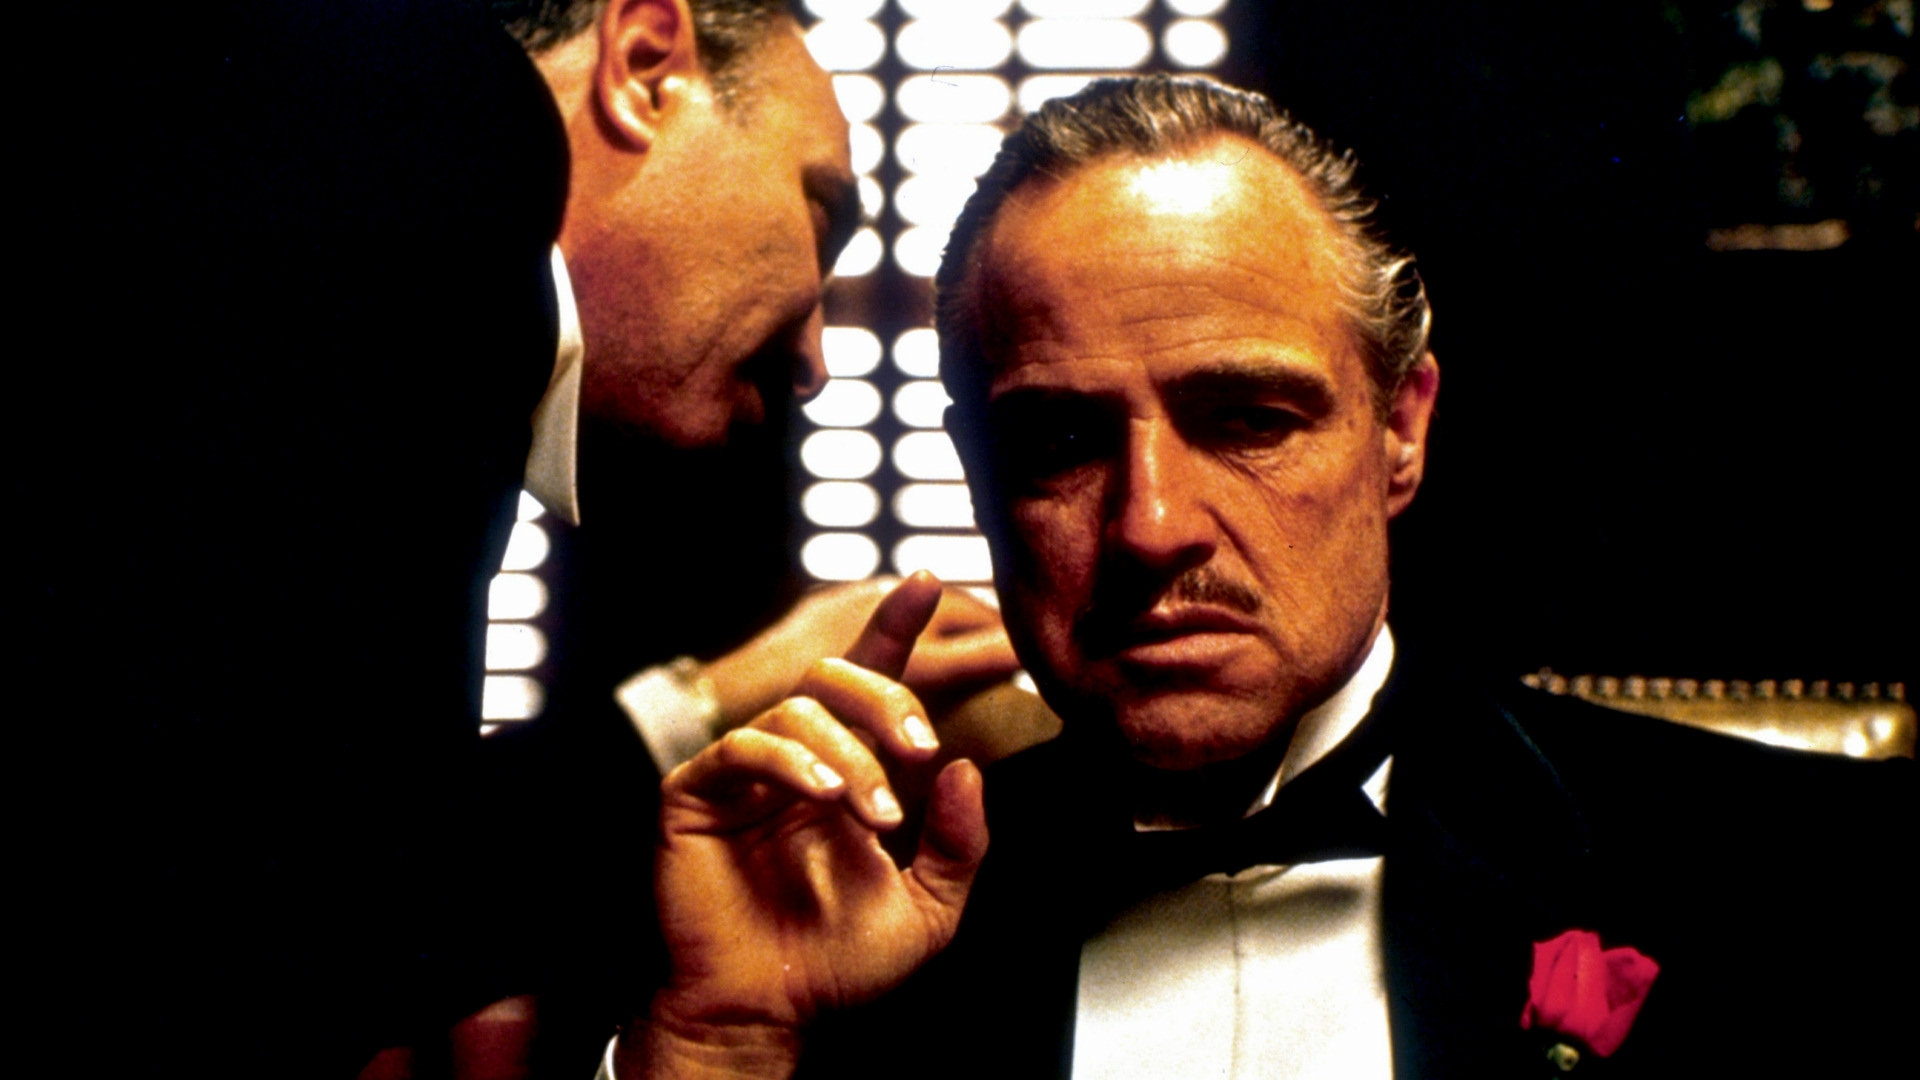 1920x1080 Don Vito Corleone Wallpaper Download 1920x1080